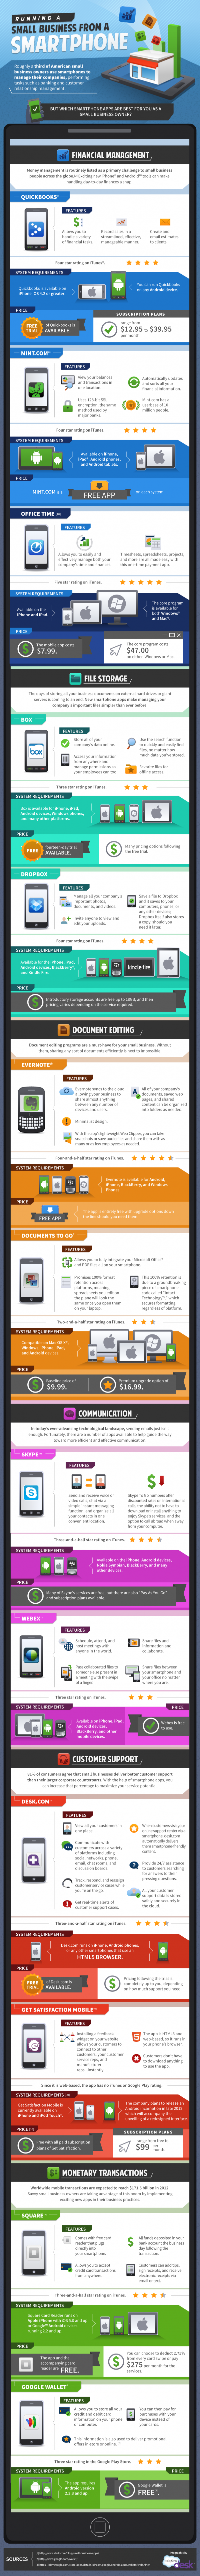 Running-a-small-business-with-apps